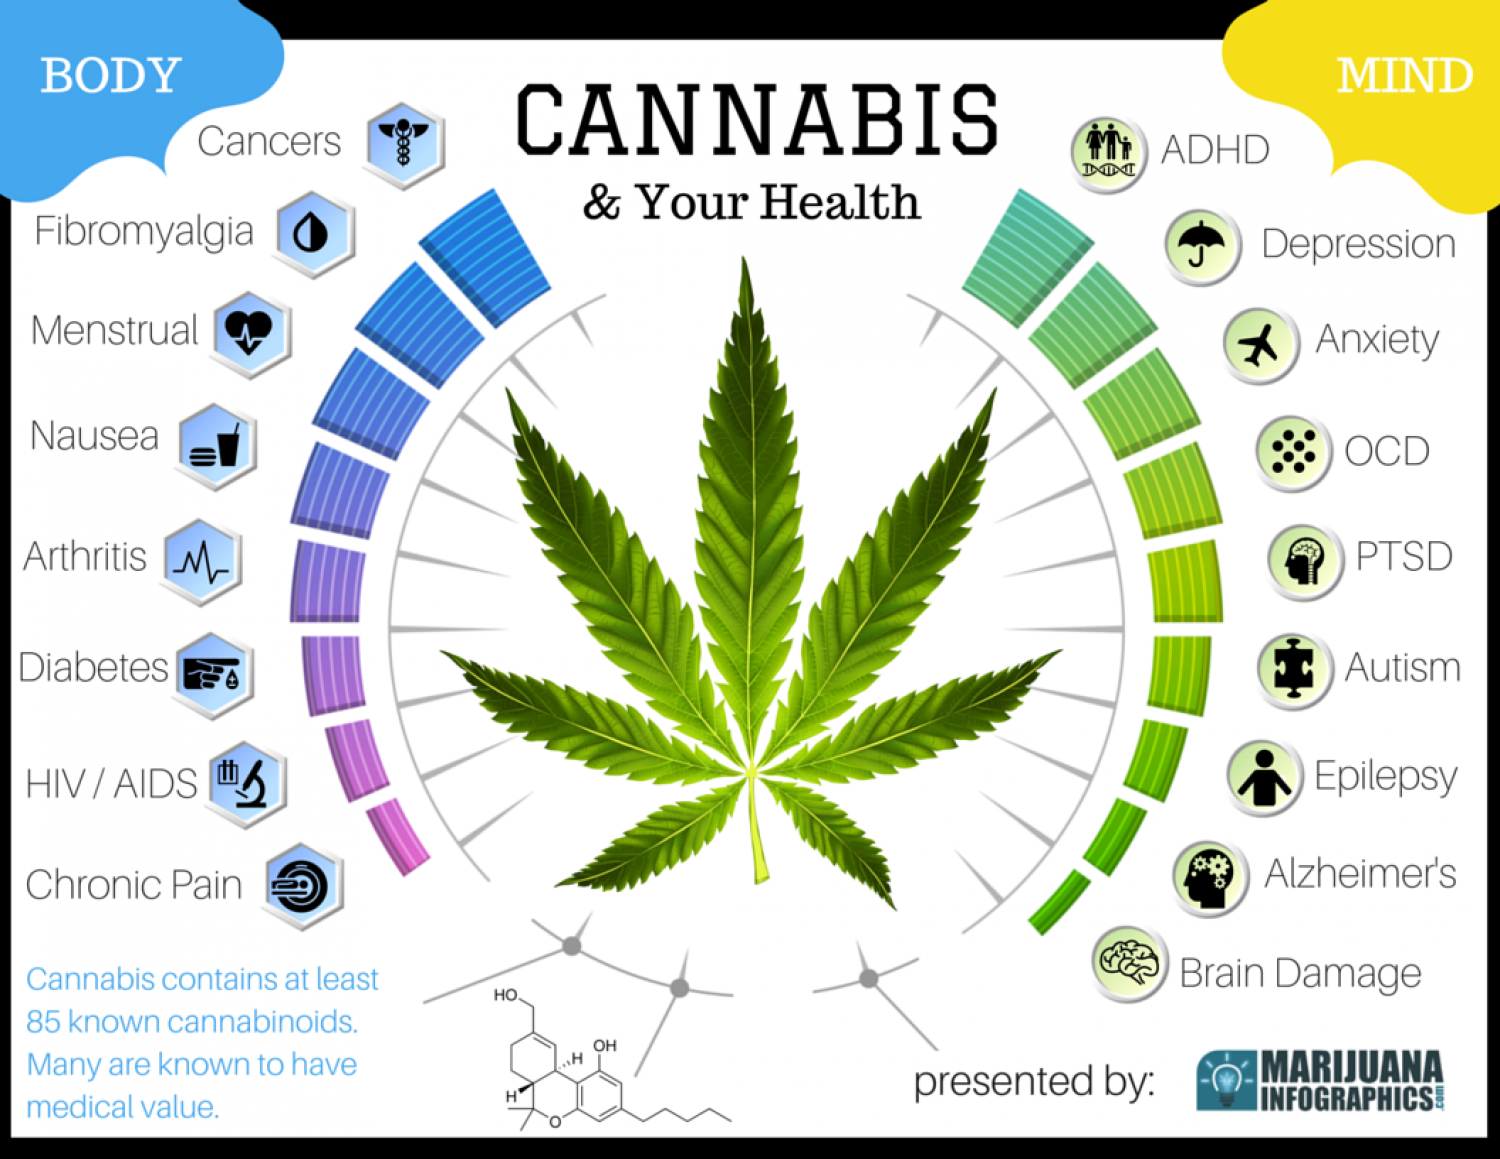 Cannabis and Your Health Infographic